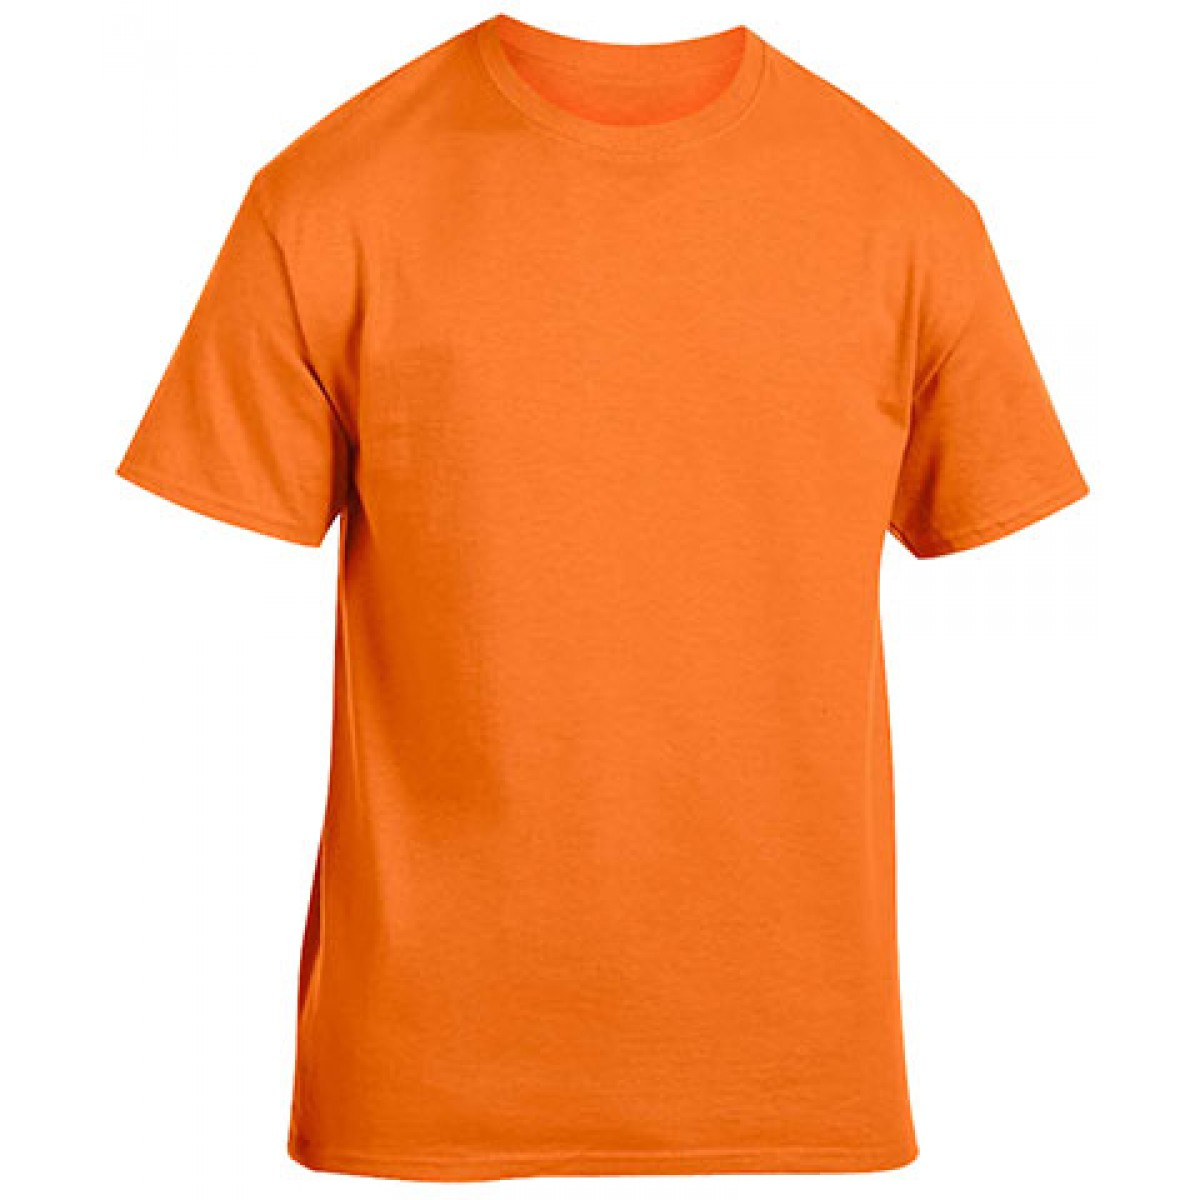 Cotton Short Sleeve T-Shirt-Safety Orange-2XL